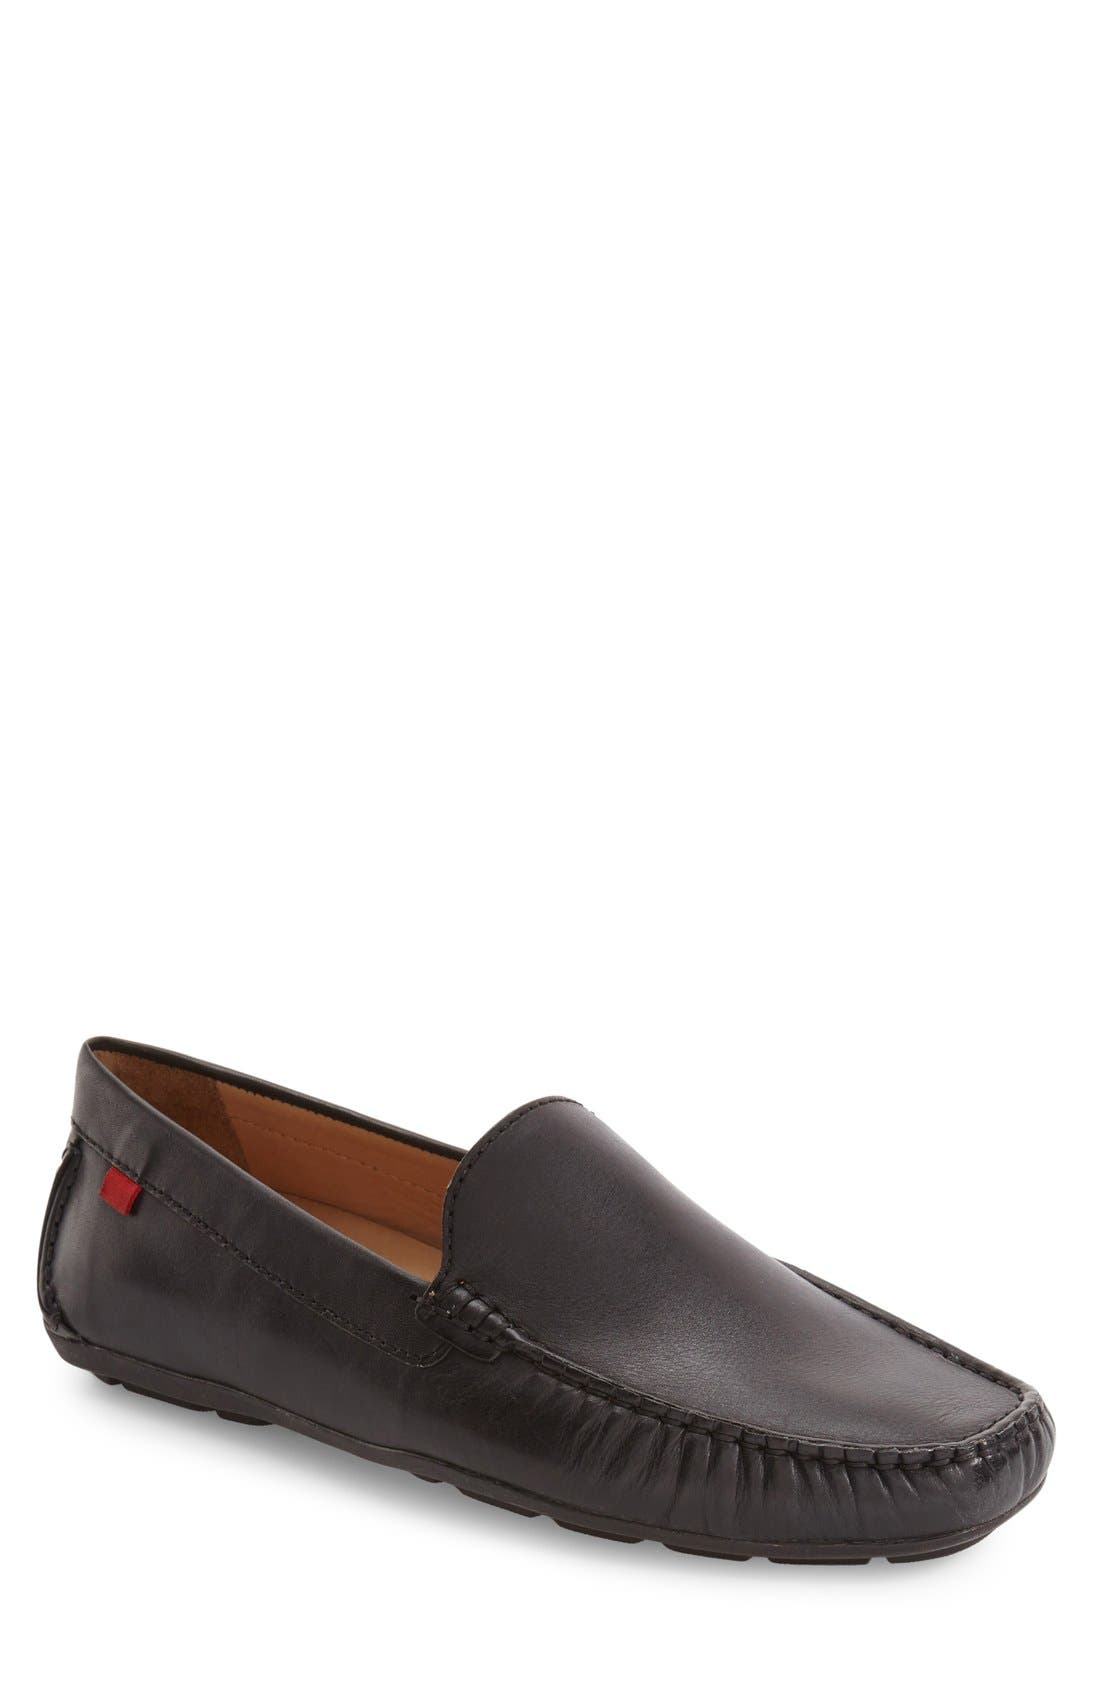 Venetian Driving Loafer,                         Main,                         color, 001